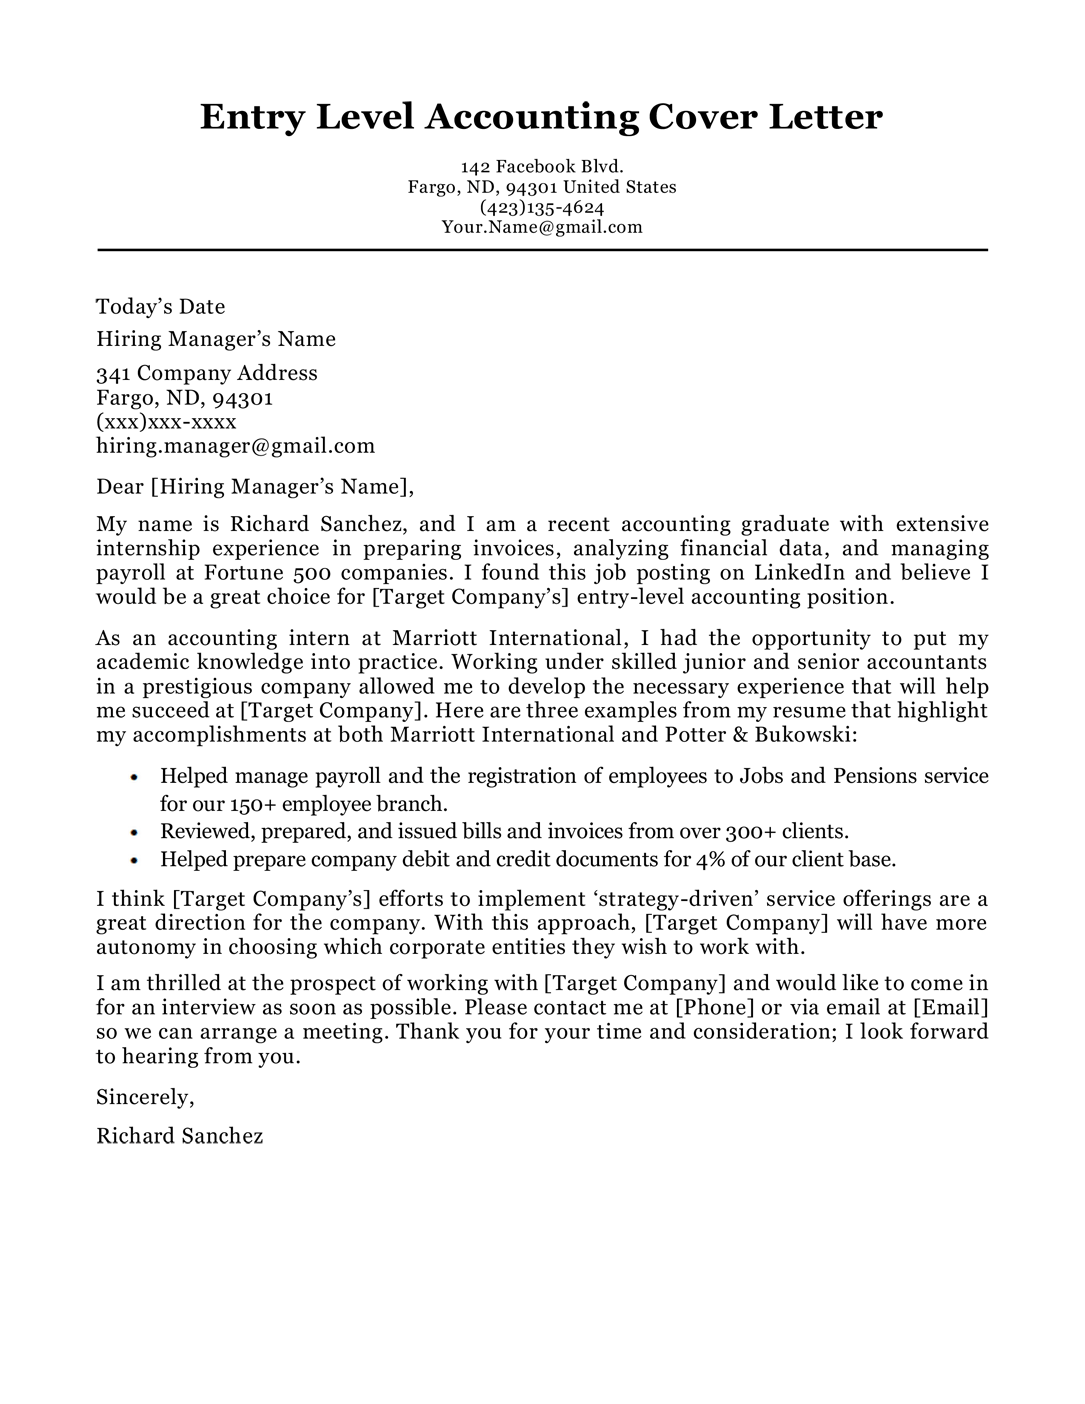 Accounting cover letter sample